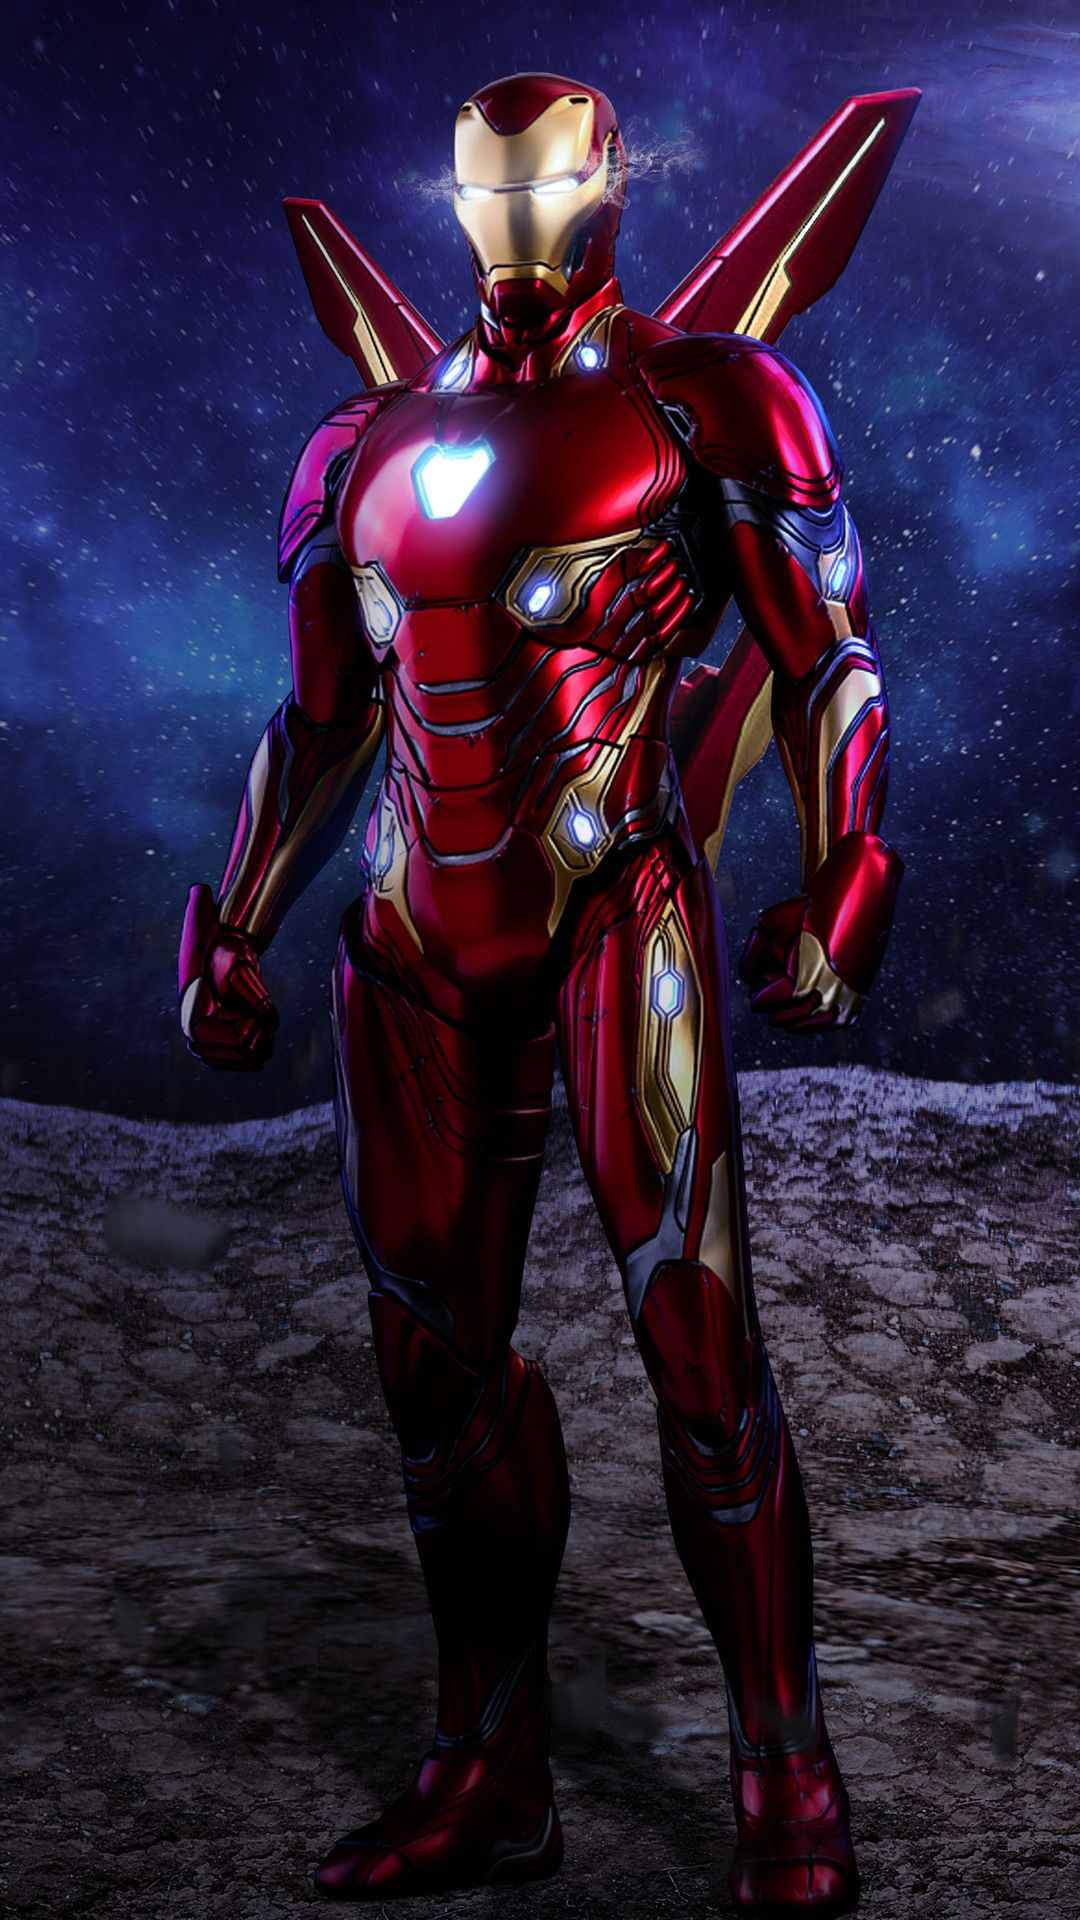 Infinity War Iron Man Wallpapers Top Free Infinity War Iron Man